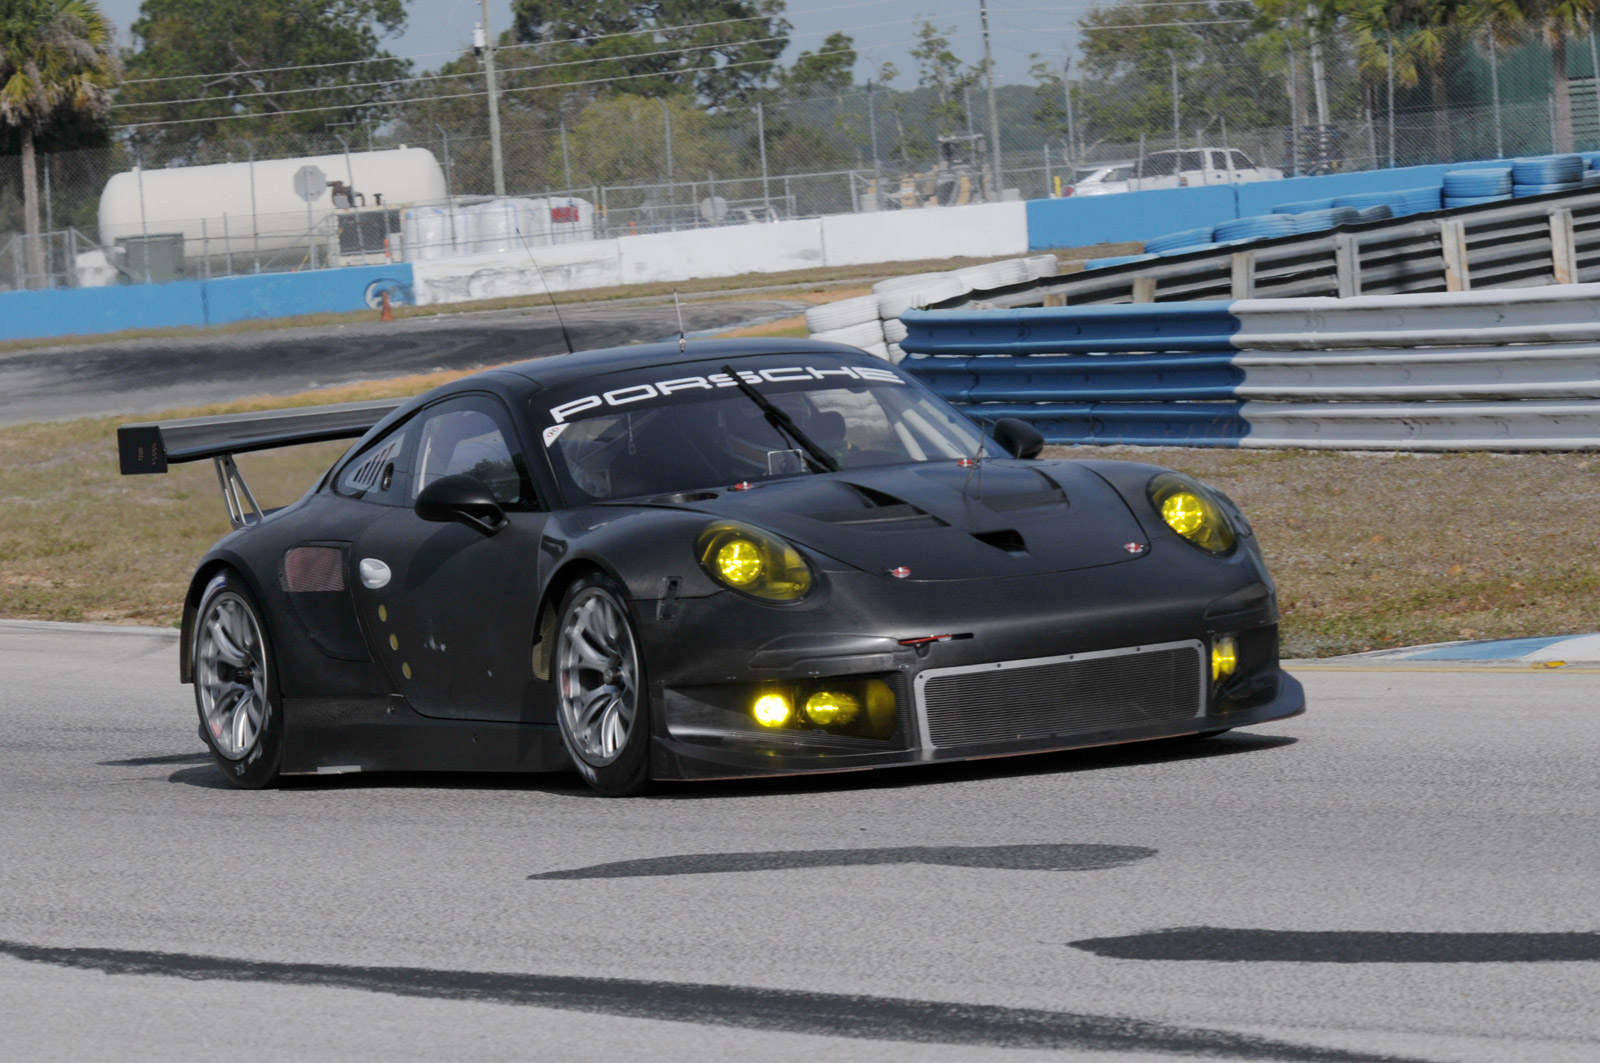 2013 Porsche 911 Rsr Race Car Revealed